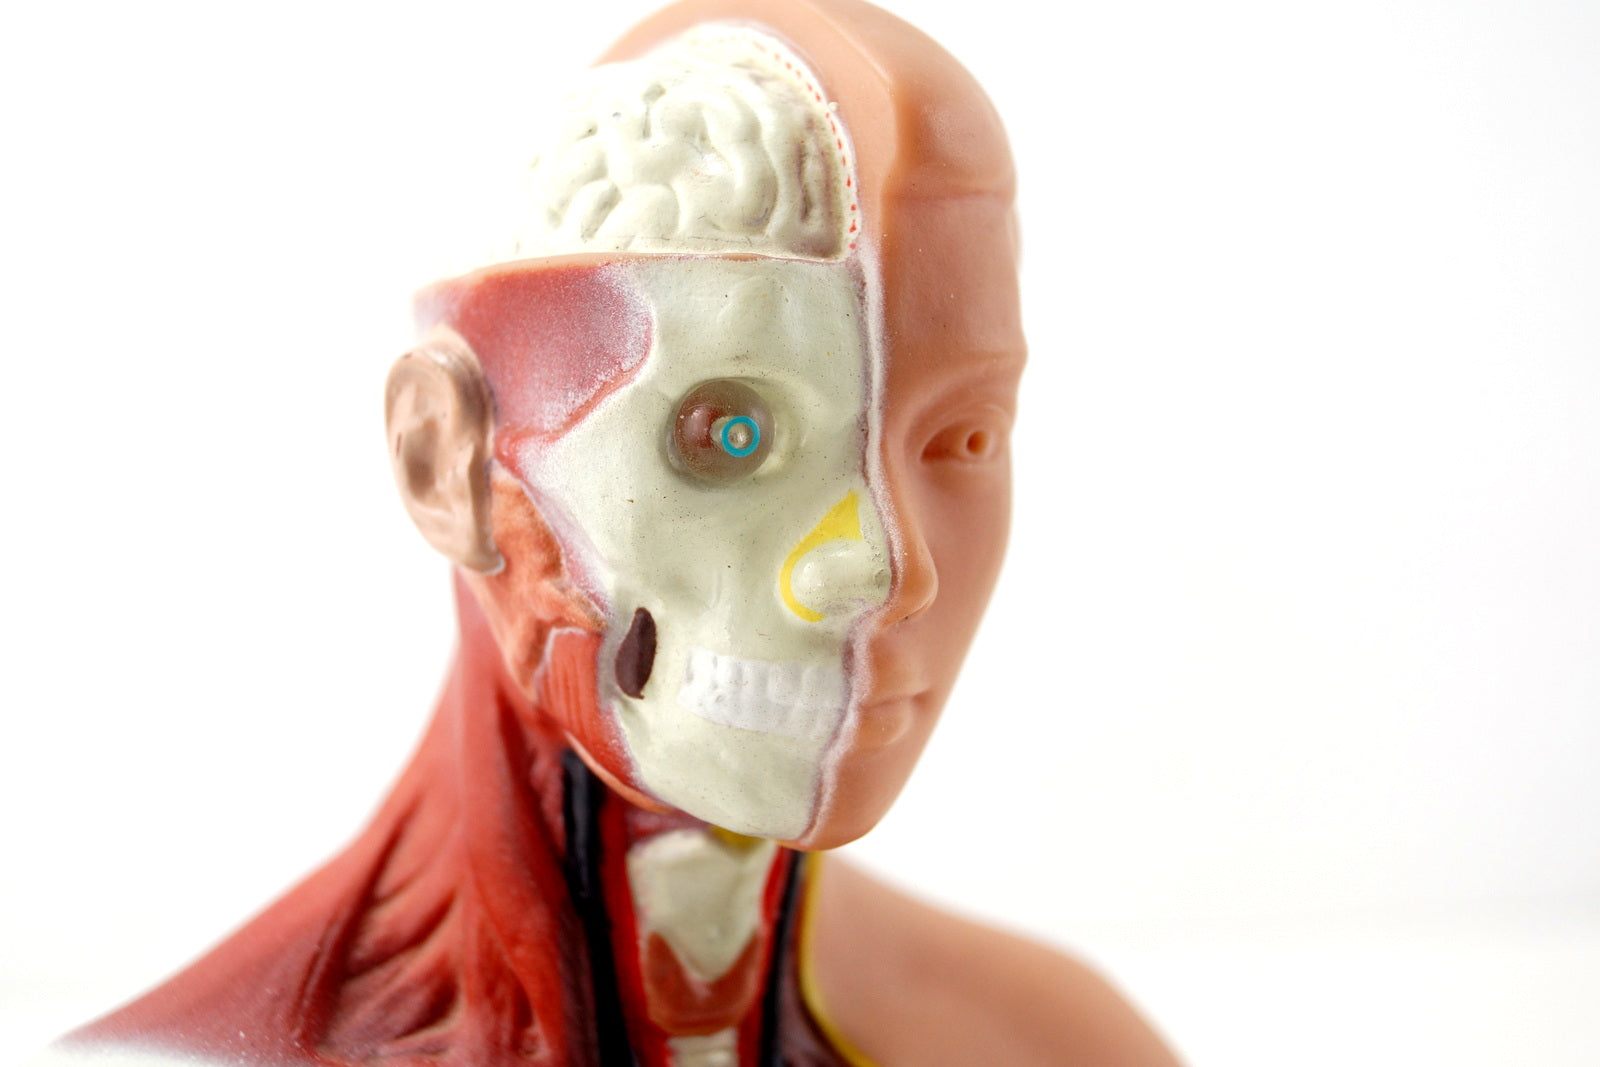 Vintage Human Anatomy Model with Removable Parts (c.1970s ...